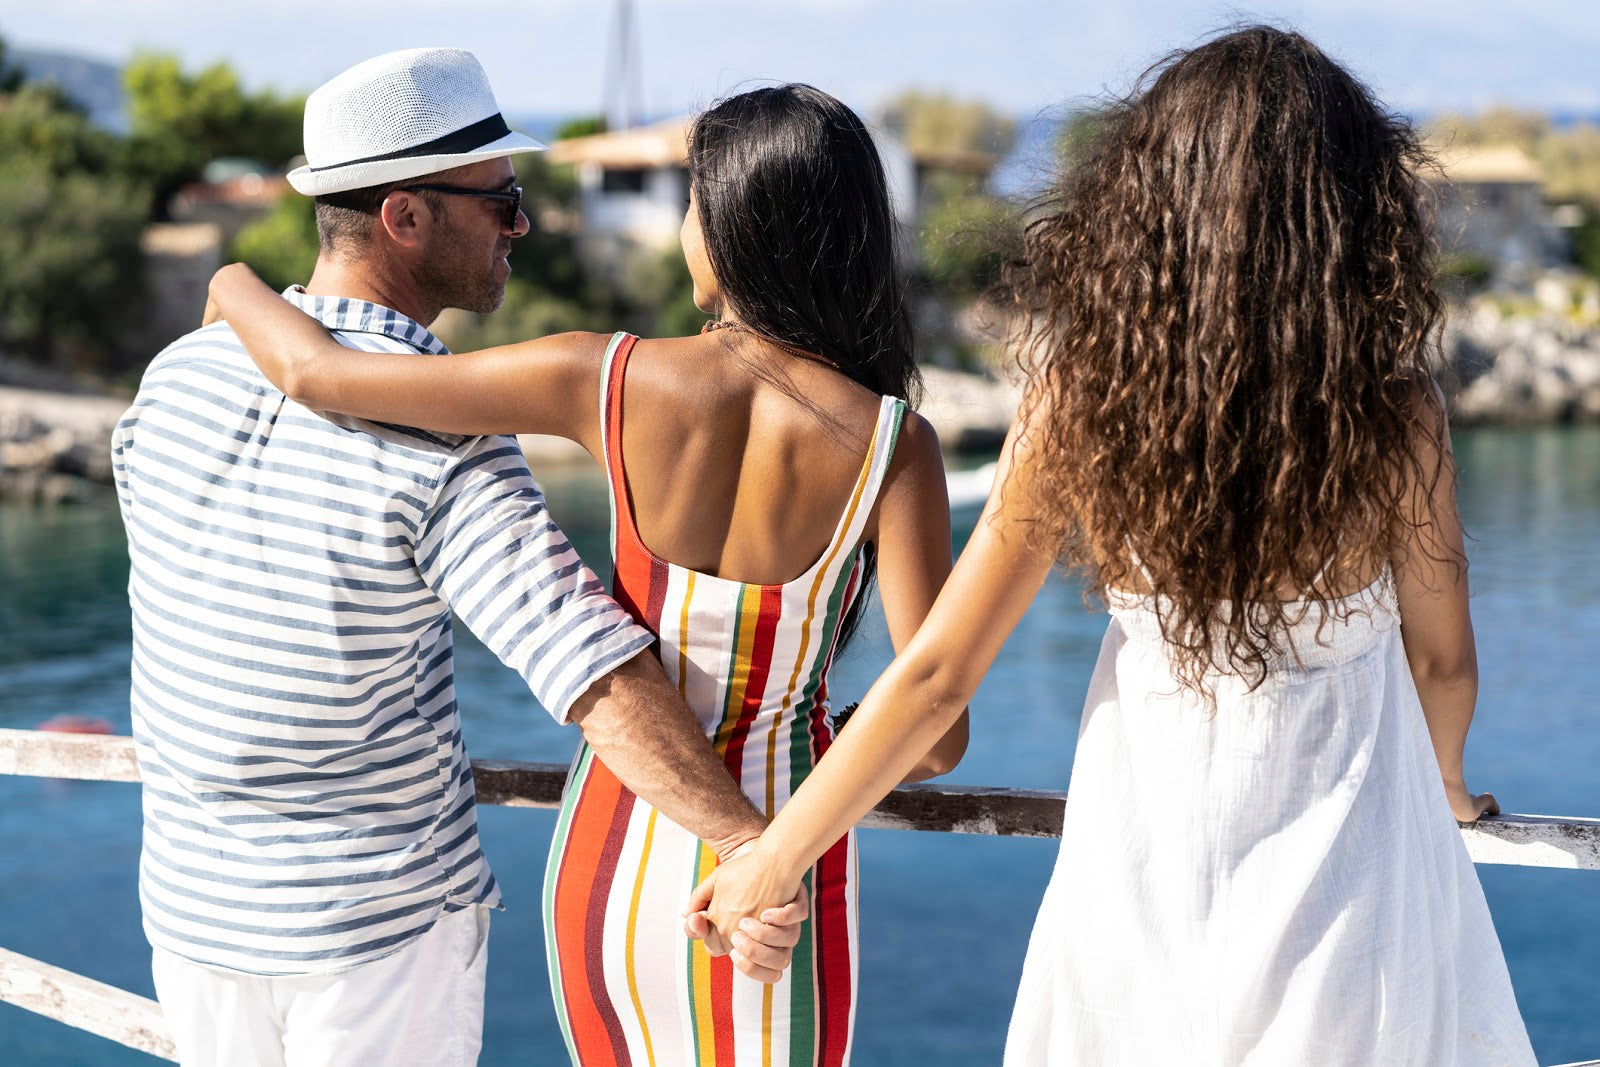 Image of a man with arm around a woman while holding hands with another woman